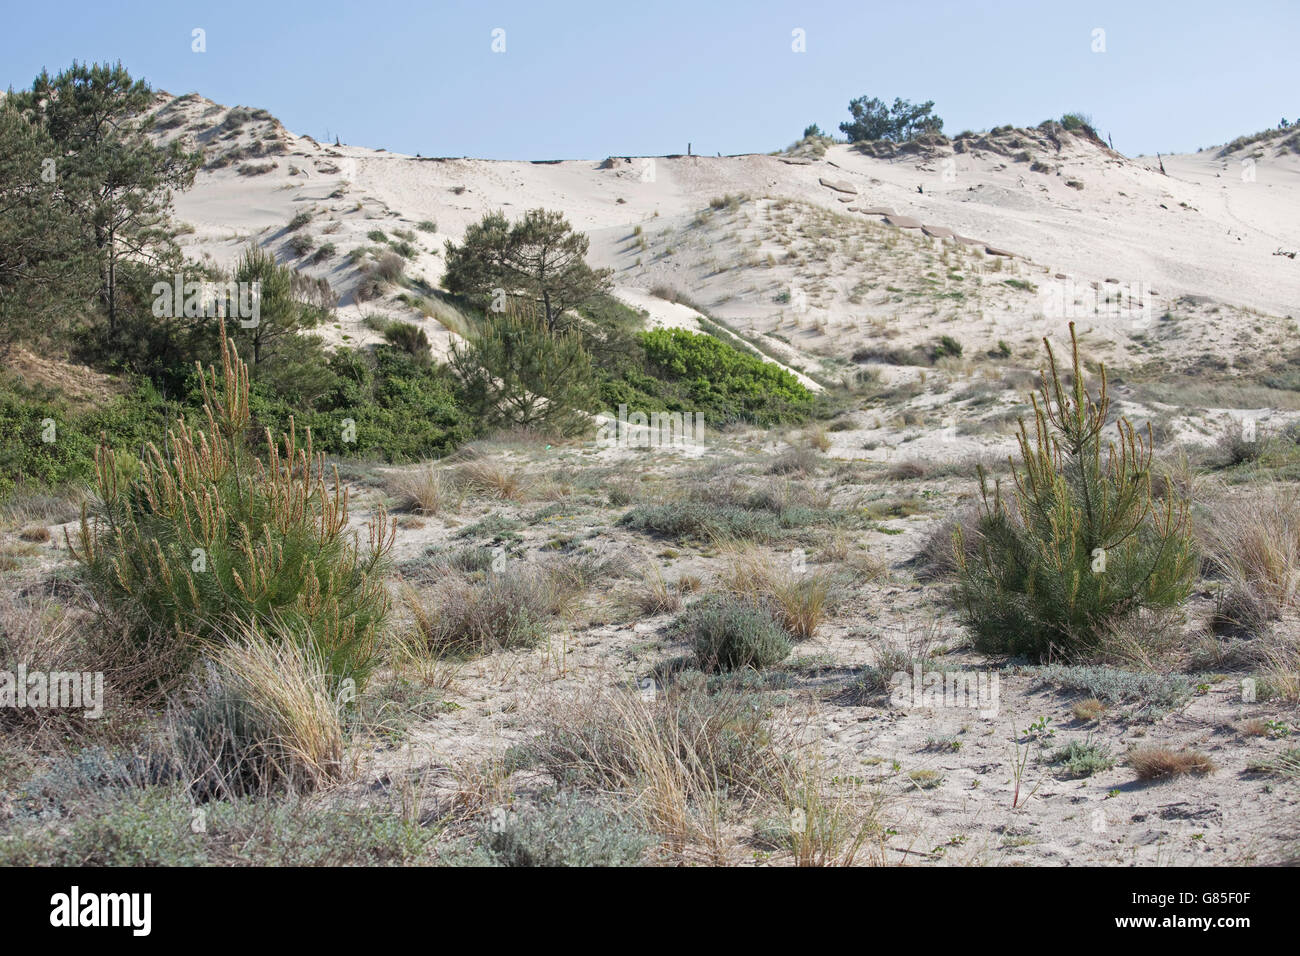 Pine trees and marram grass recolonising sand dunes Dune of Pyla Southern France - Stock Image